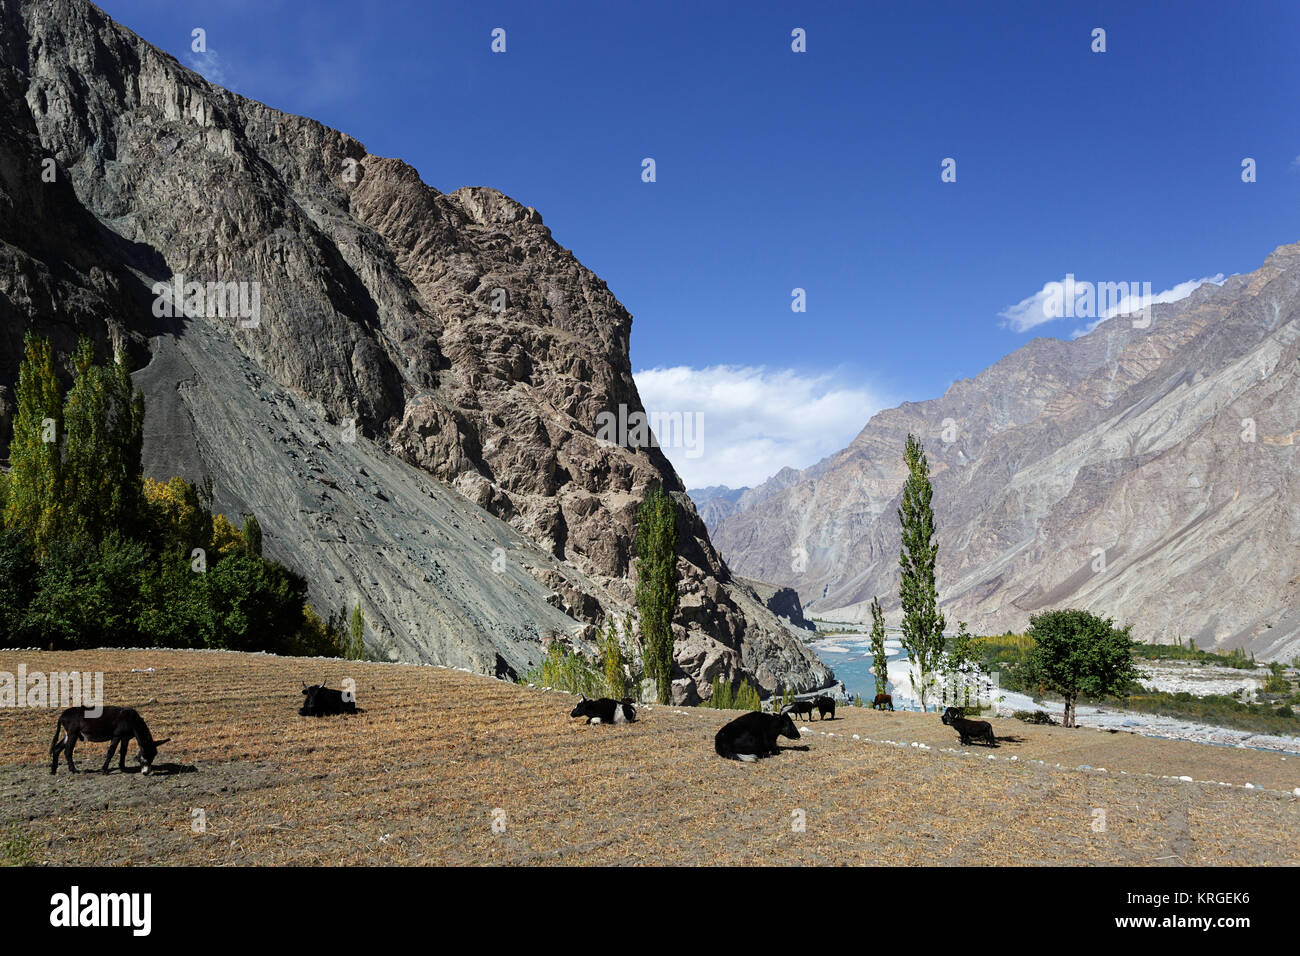 Yaks and donkeys grazing on a field by the river, Turtuk, Nubra Valley, Ladakh, Jammu and Kashmir, India. - Stock Image